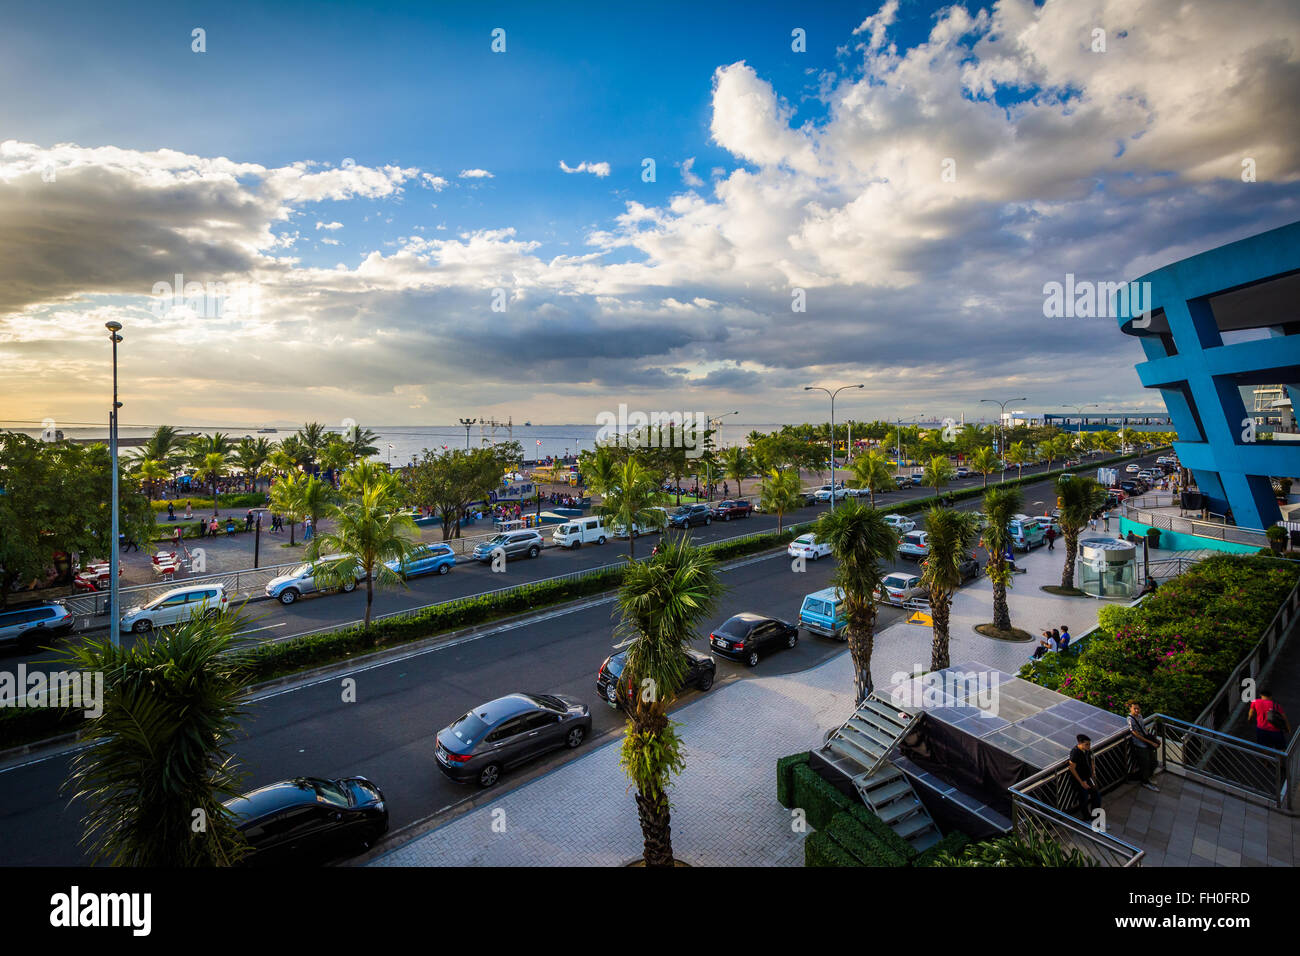 View of Manila Bay and Seaside Boulevard, in Pasay, Metro Manila, The Philippines. - Stock Image